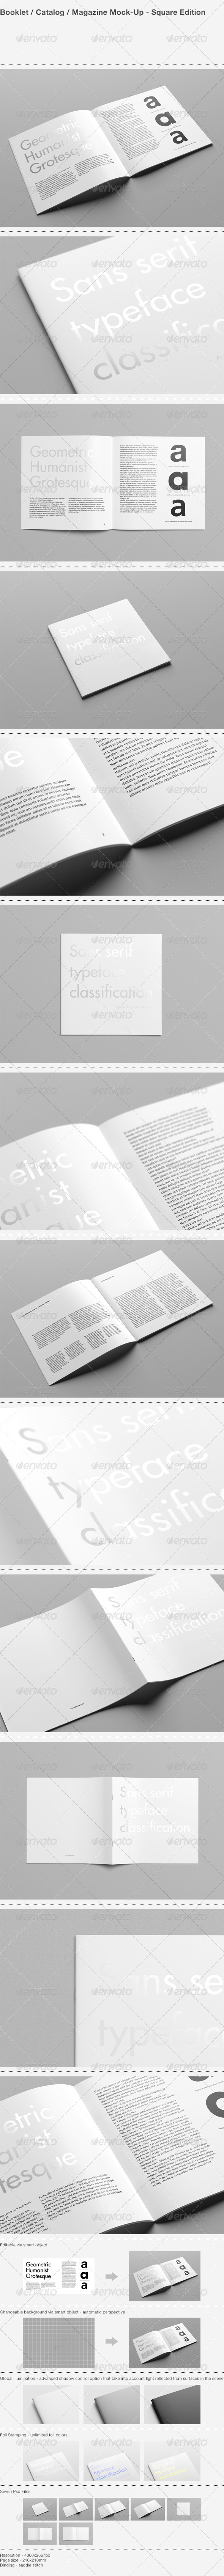 Booklet Catalog Magazine Mock-Up Square